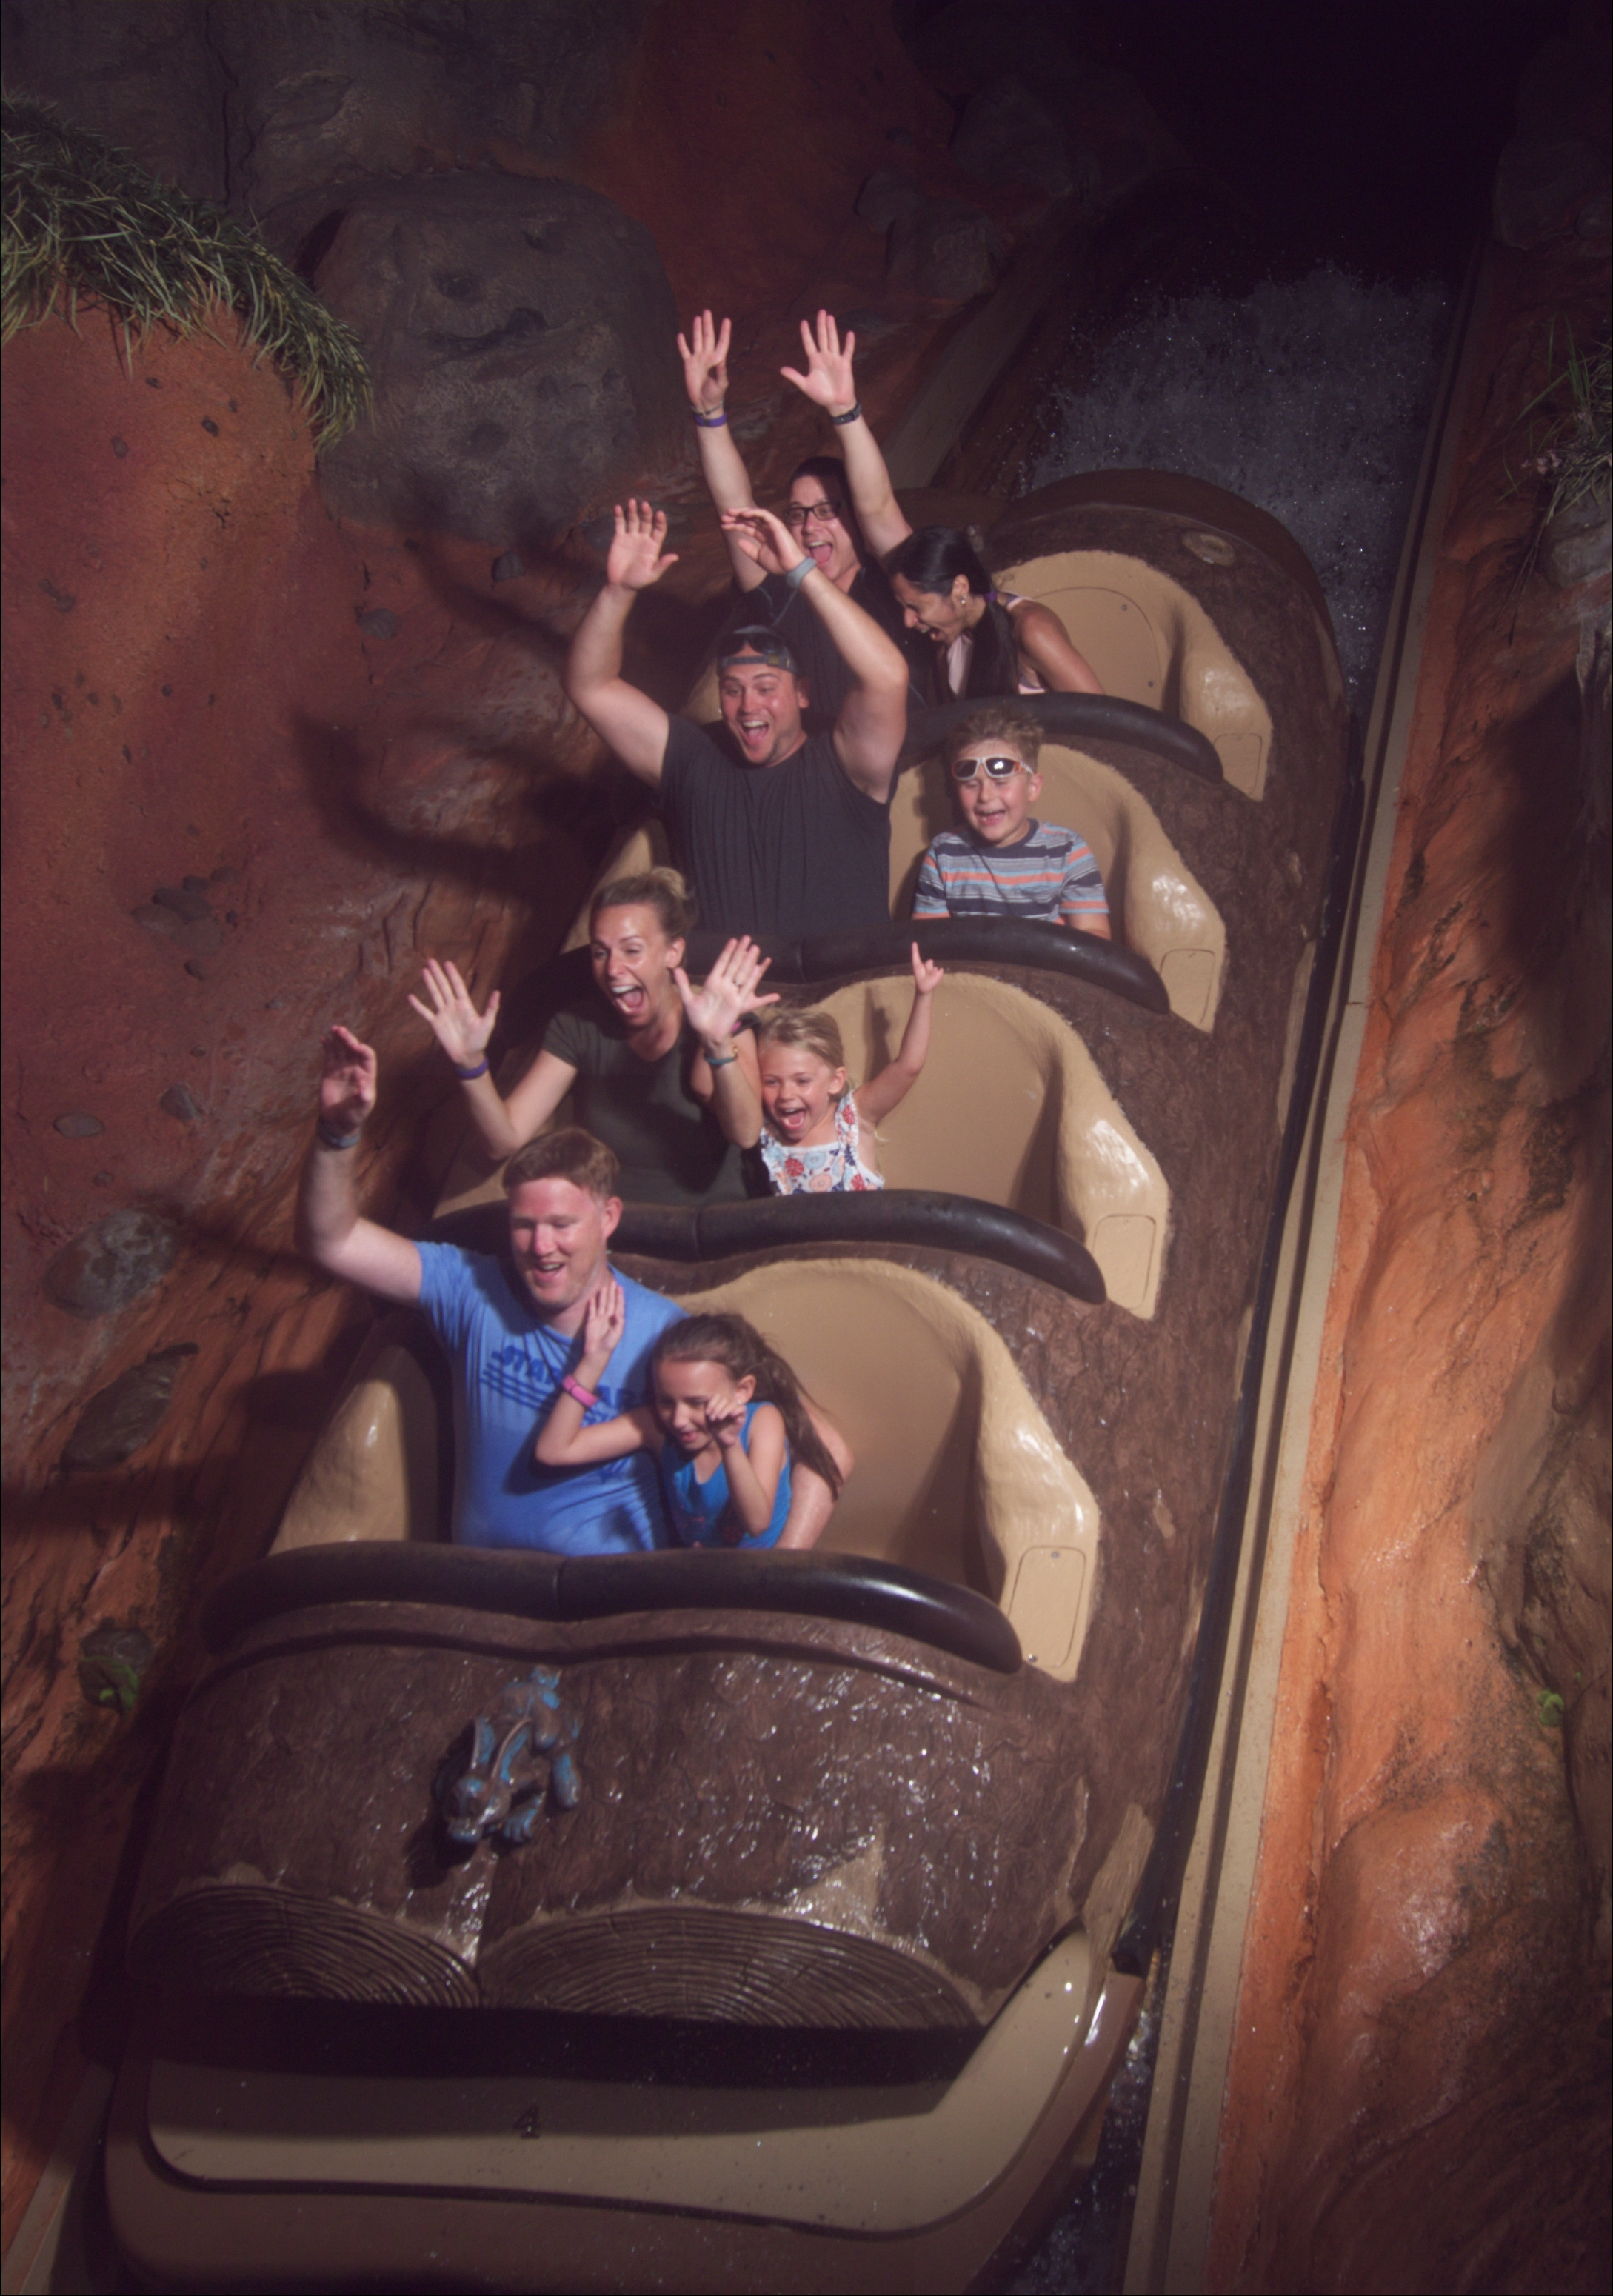 On Disney World Magic Kingdom Splash Mountain